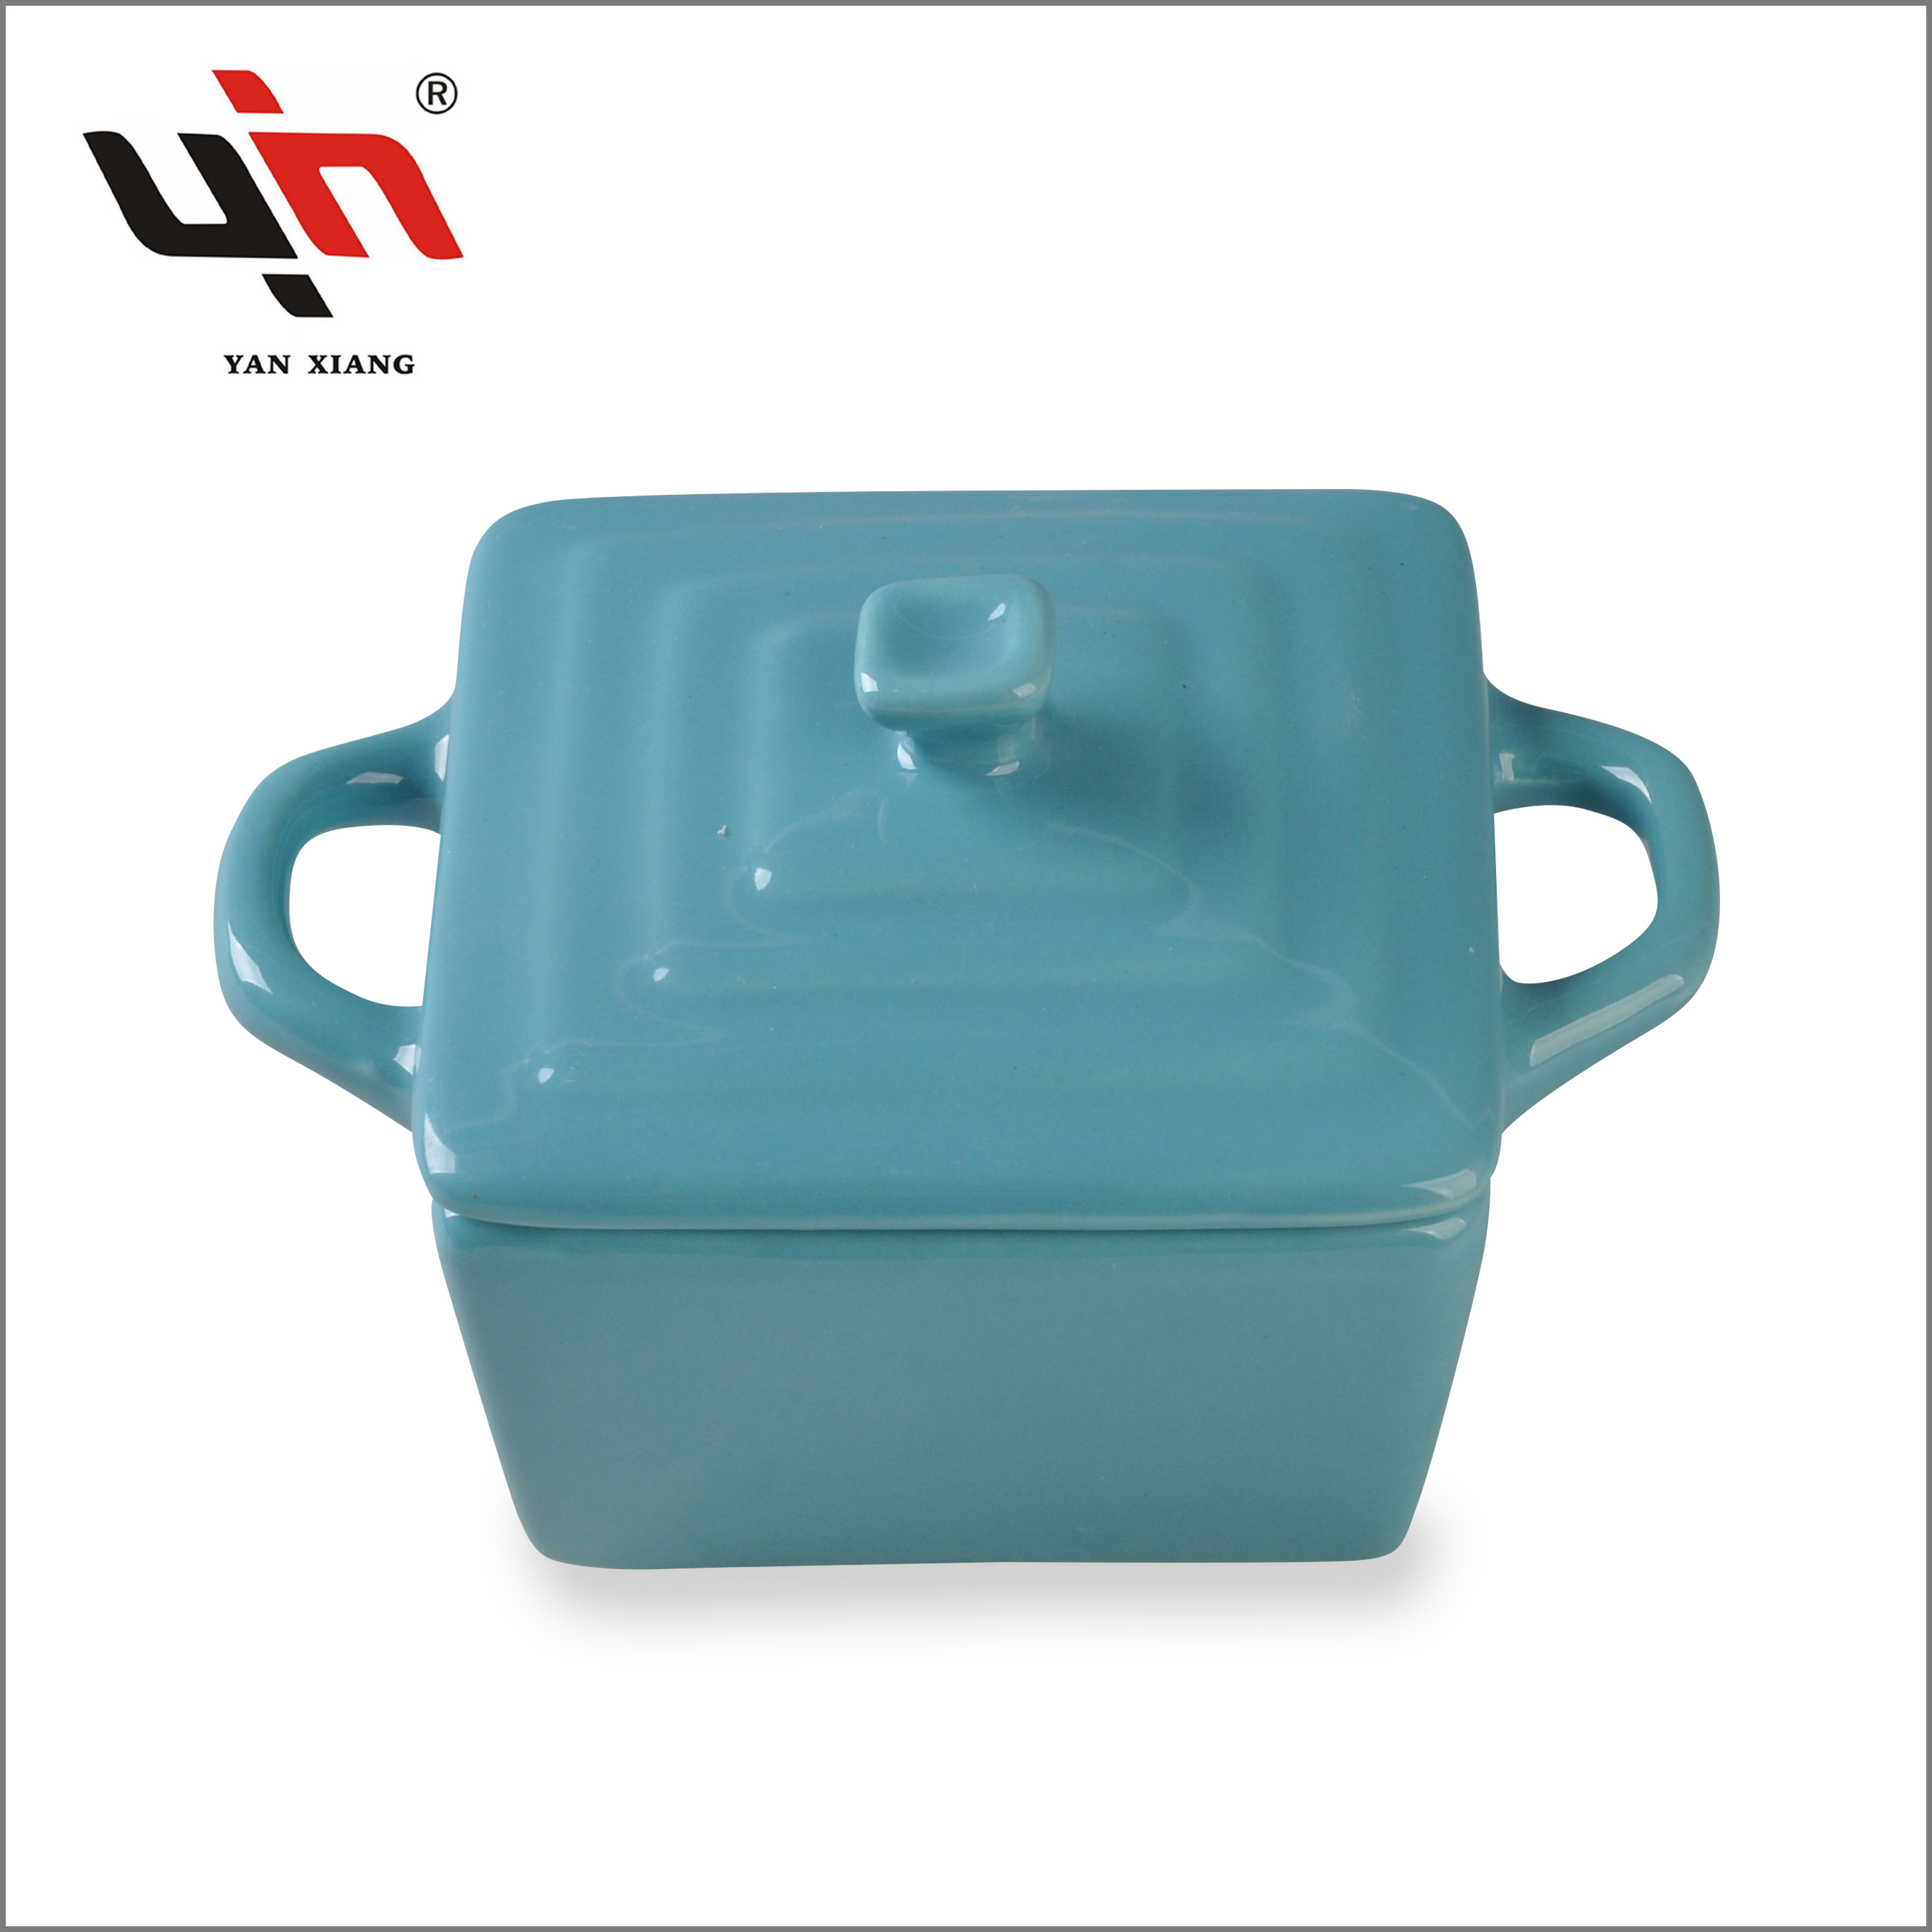 Tableware Ceramic Ceramic Casserole With Handles Factory sale Yanxiang porcelain